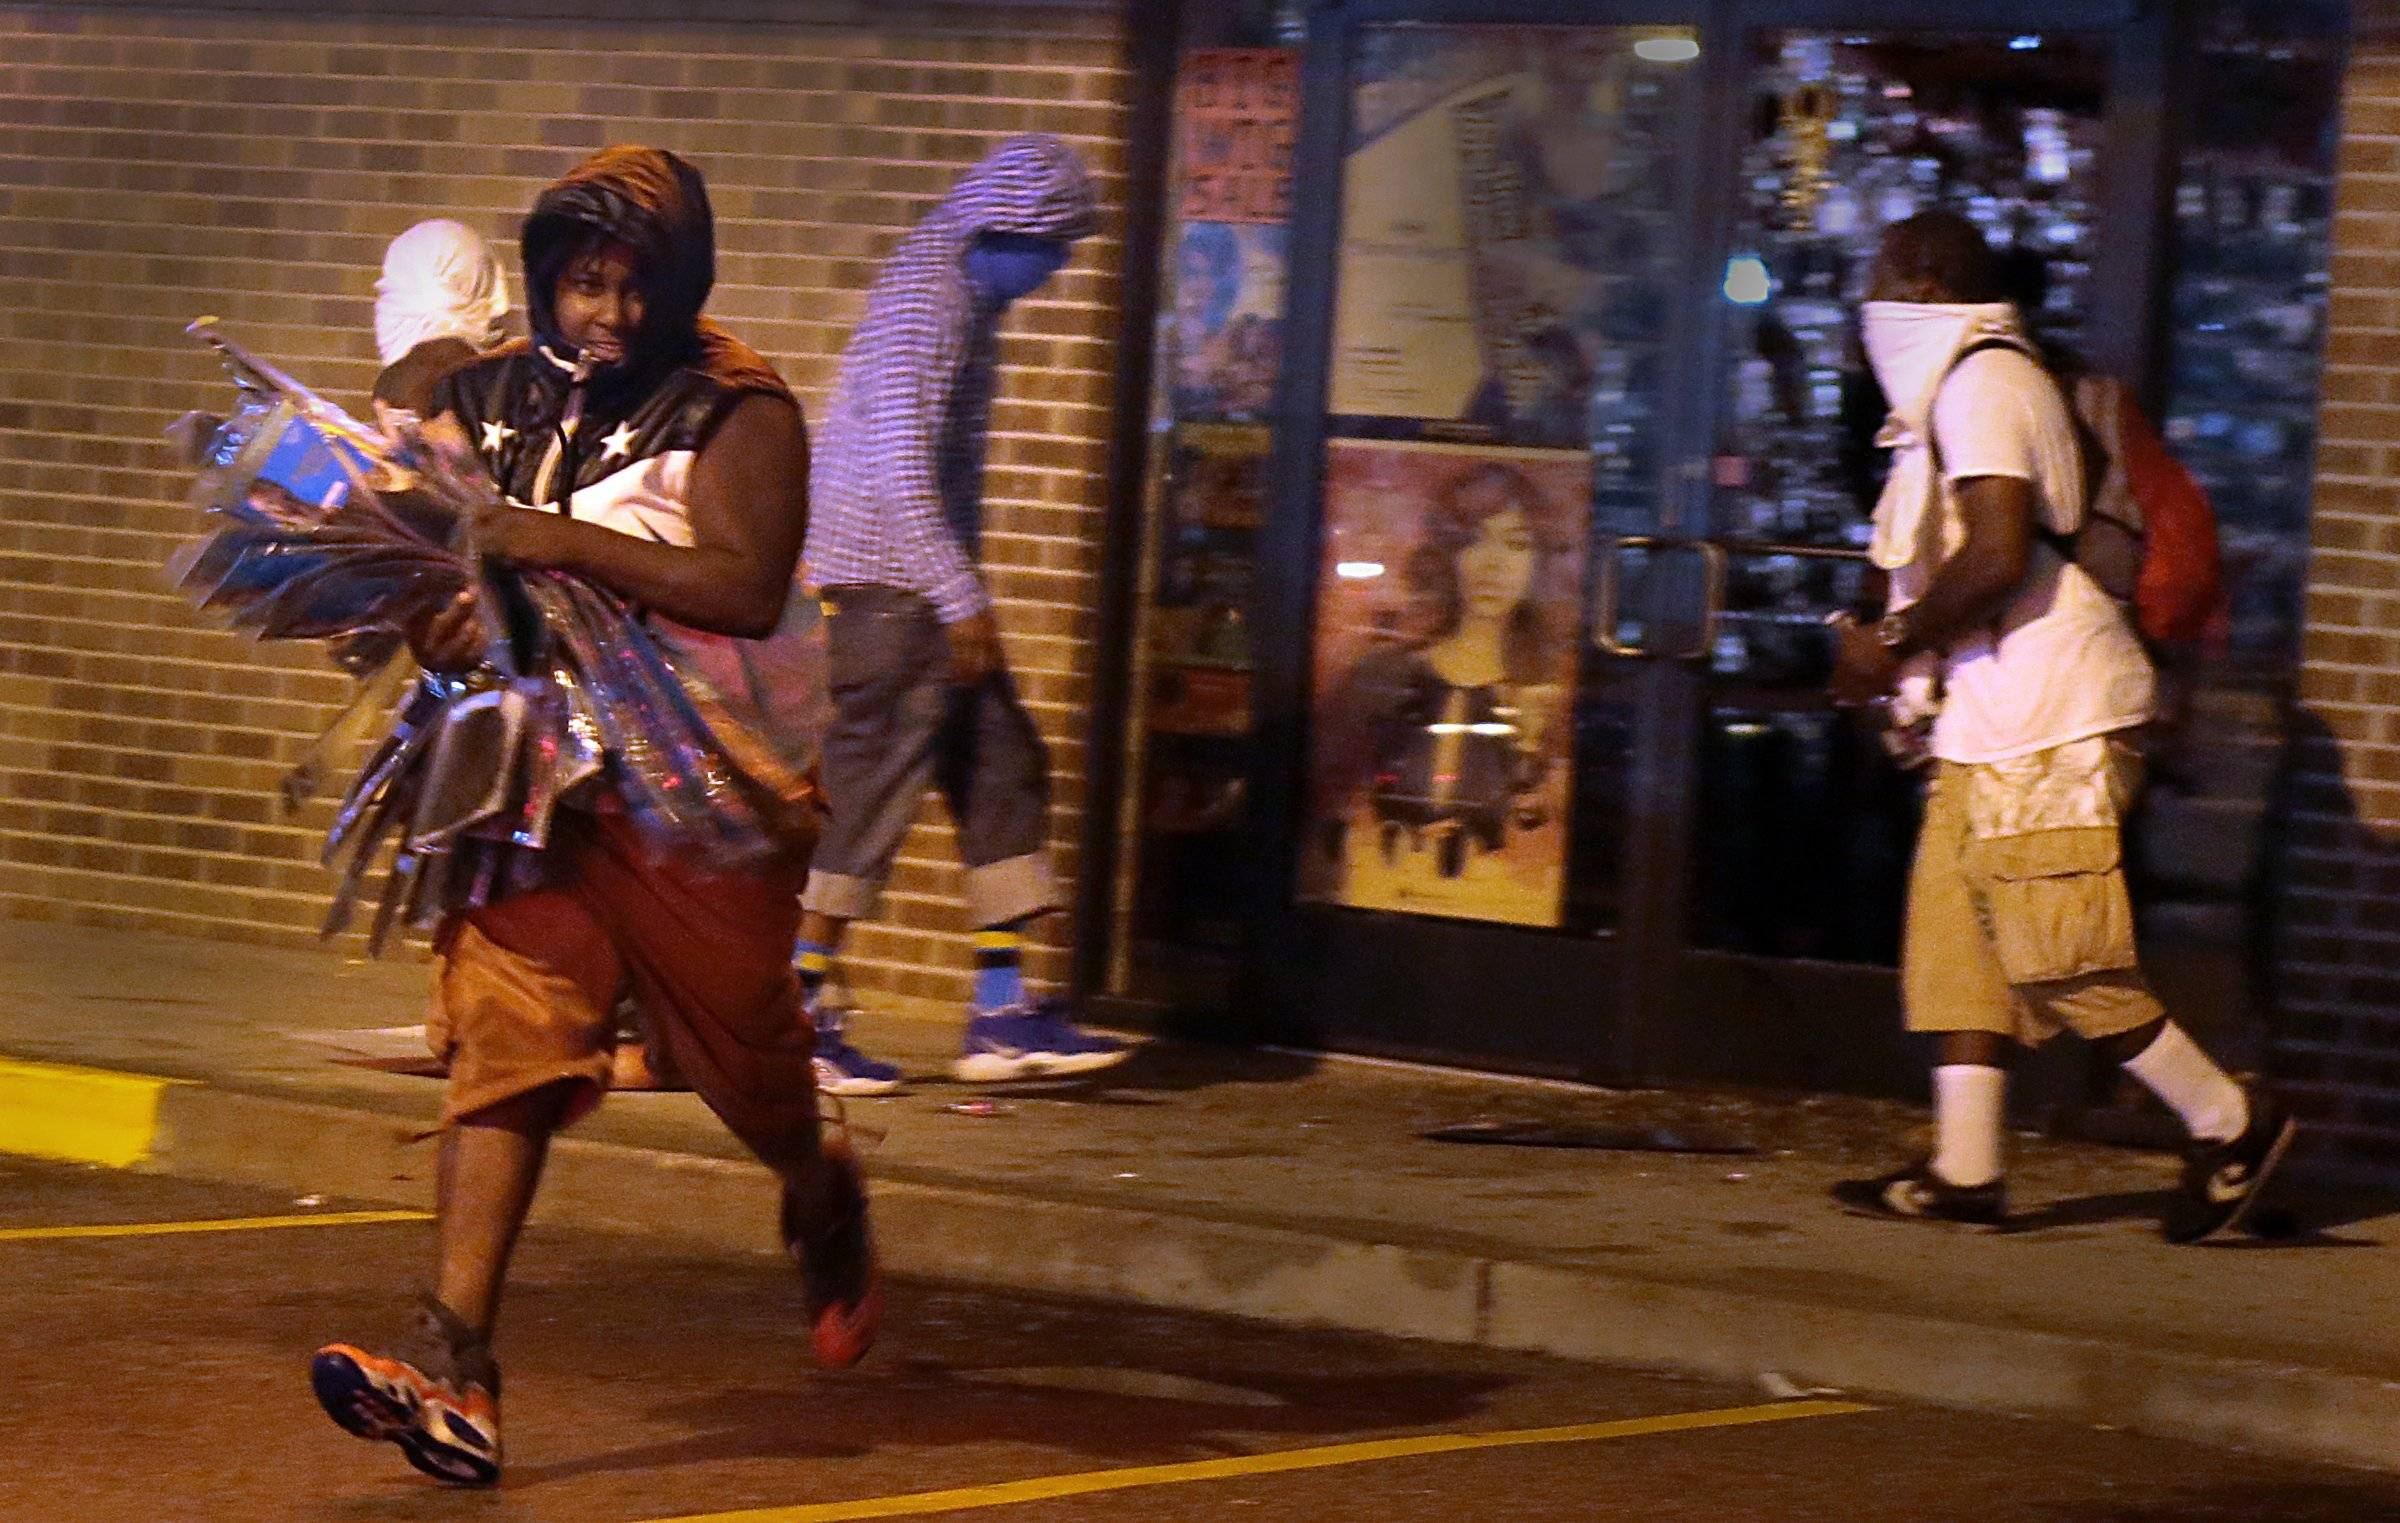 A looter escapes with items from Feel Beauty Supply on West Florissant Avenue in Ferguson early Saturday, Aug. 16, after protesters clashed with police.